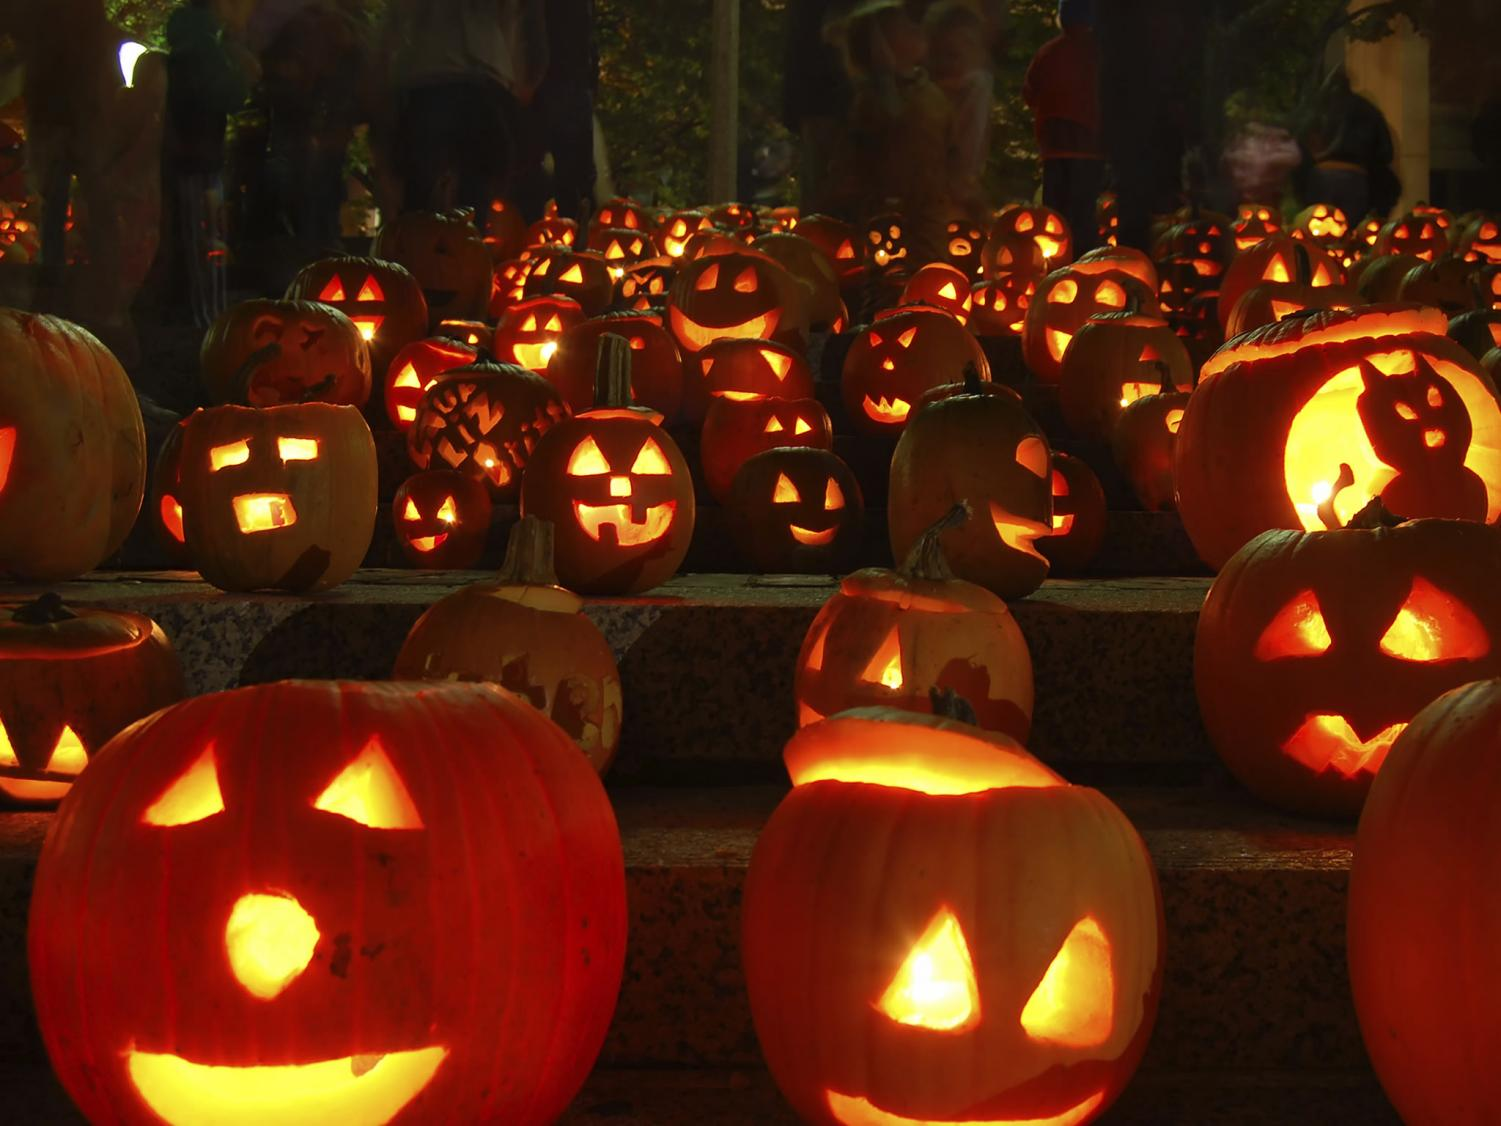 Pumpkins light up the darkness during the night and is considered a Halloween tradition.